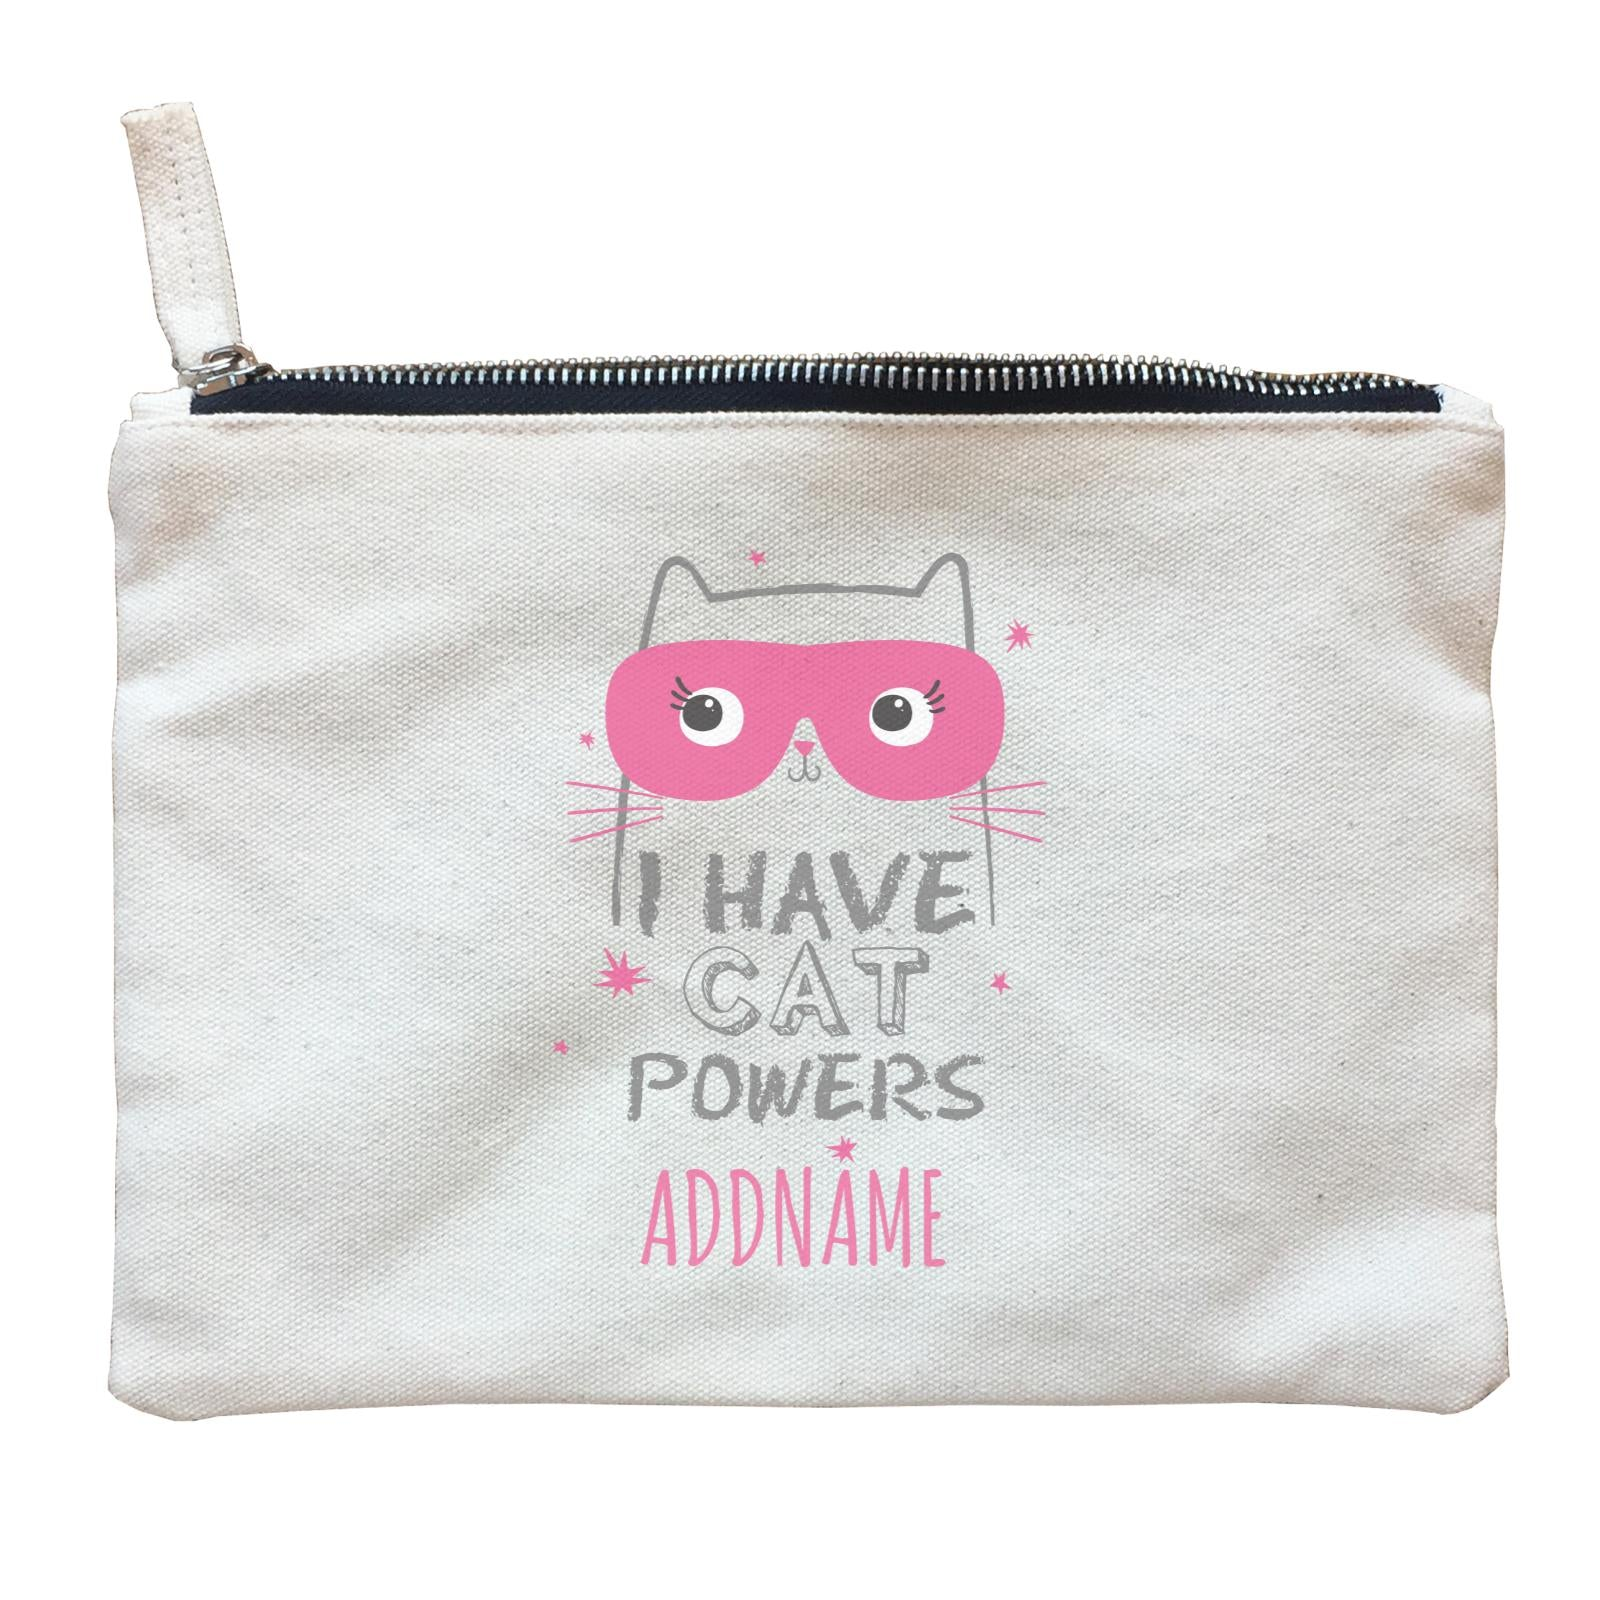 I Have Cat Powers Addname Zipper Pouch